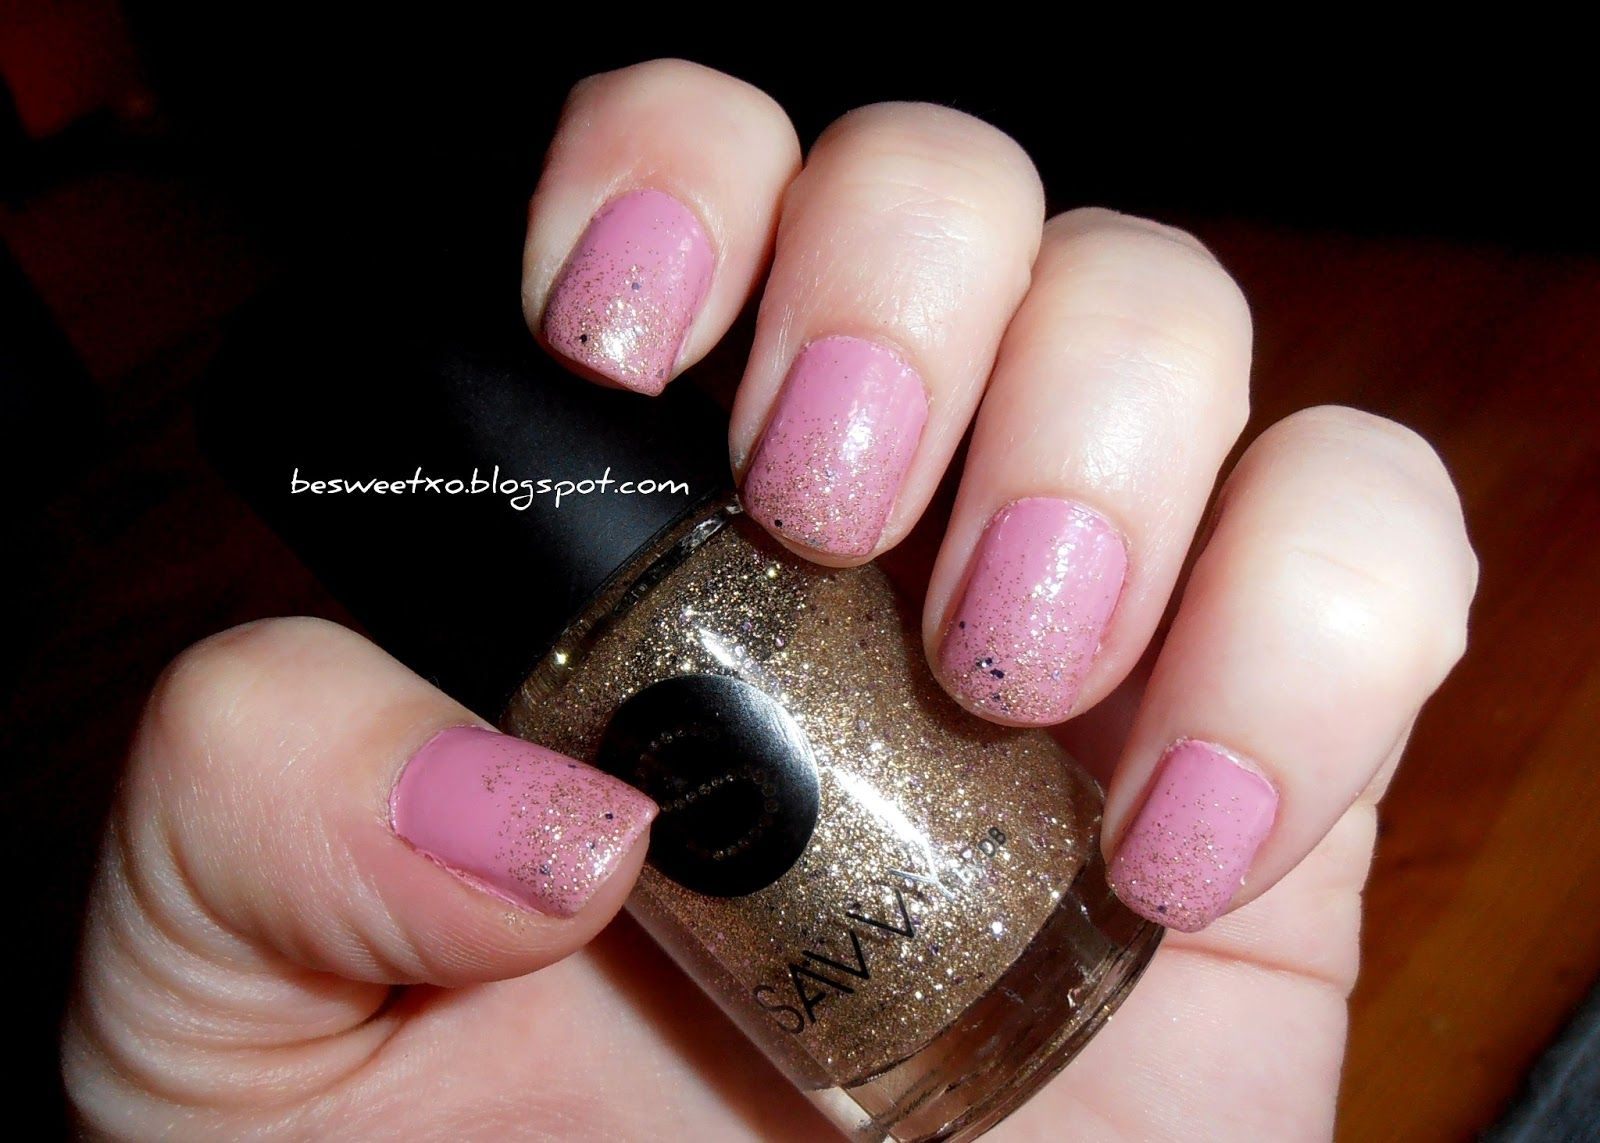 gold glitter tips on pink nails